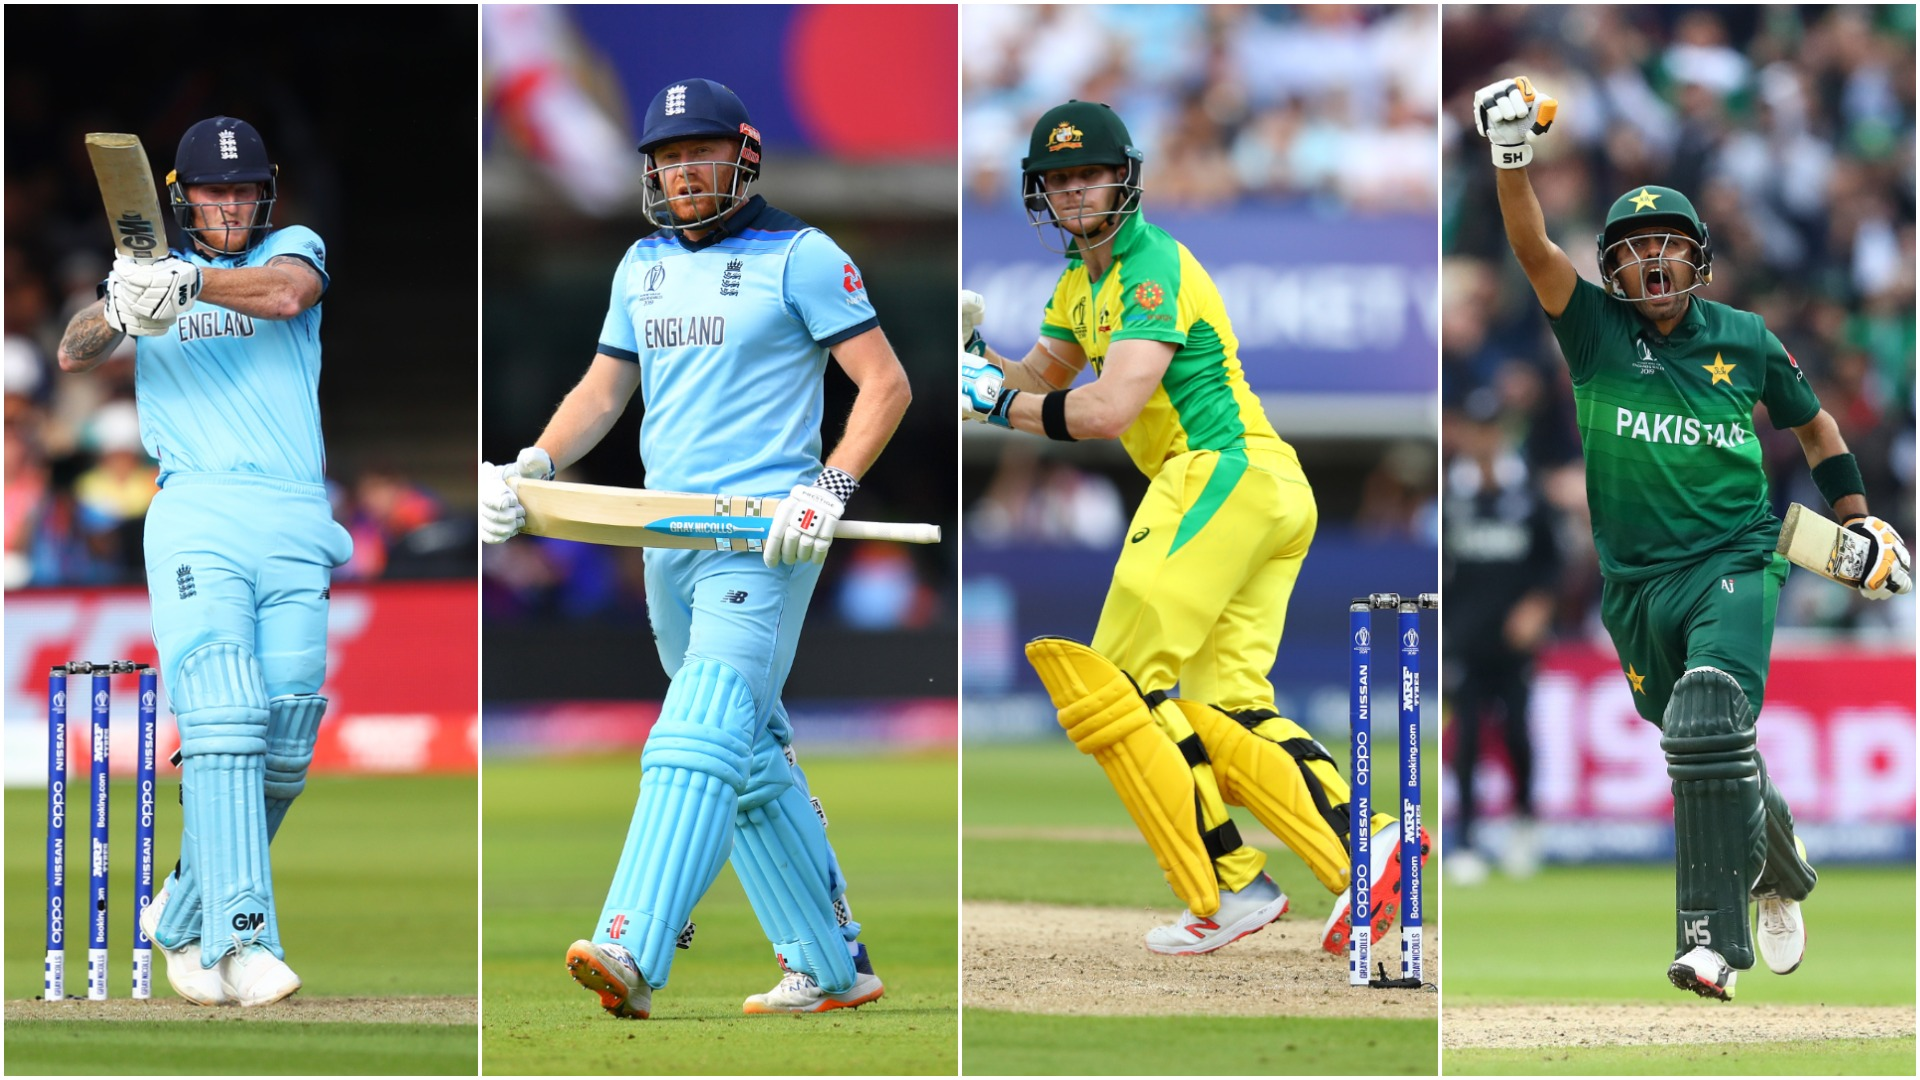 The Hundred: Eight teams, player drafts and famous faces - how the new tournament works